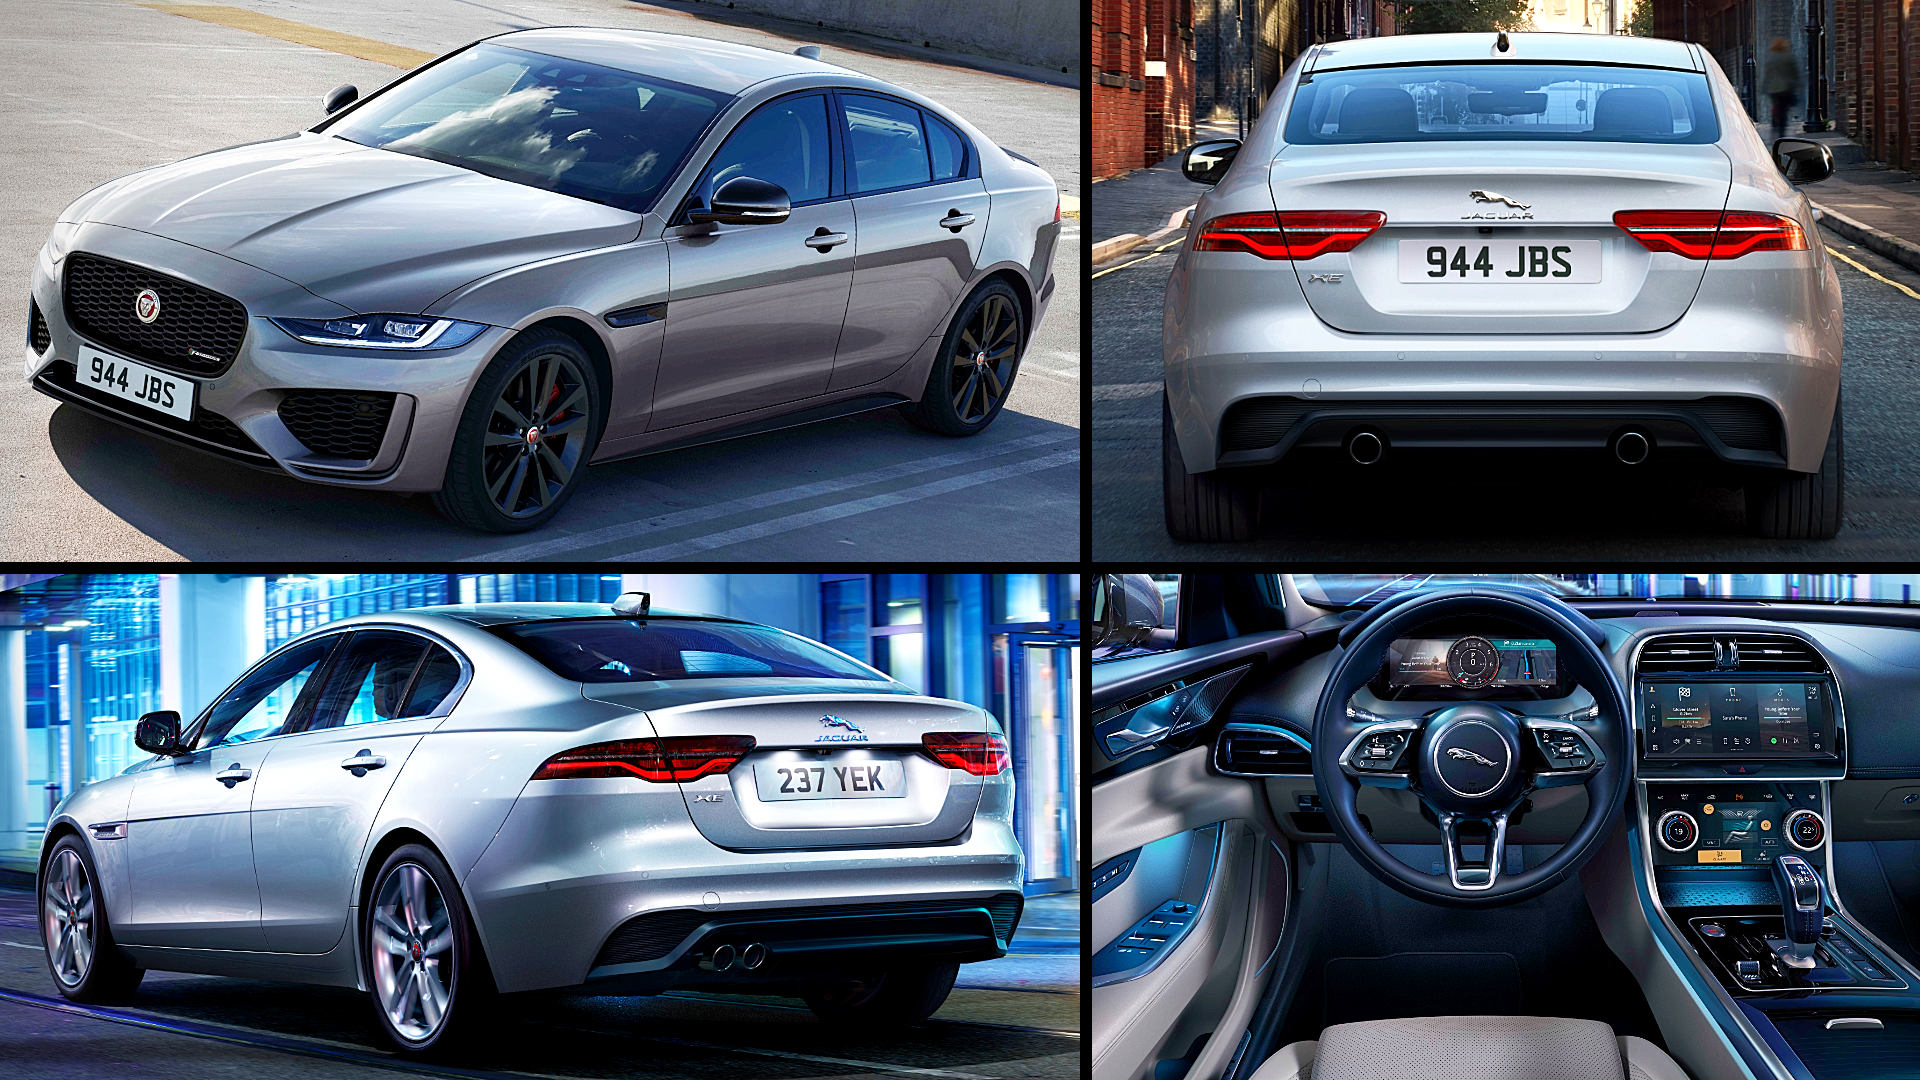 2021 Jaguar XE Sedan Pictures